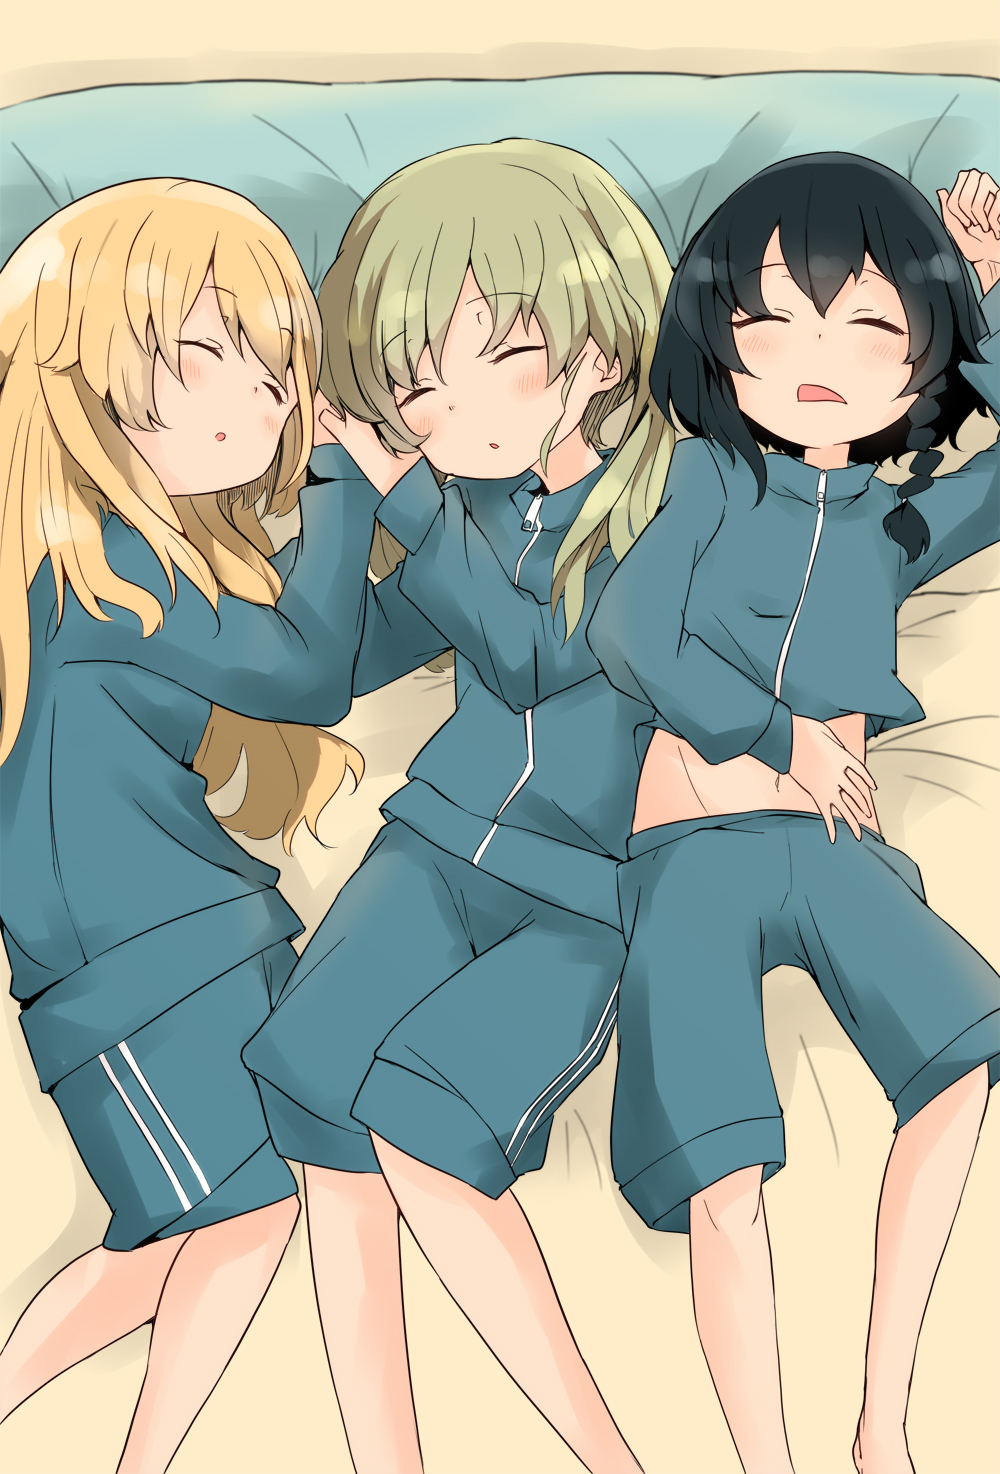 3girls alternate_hairstyle anchovy_(girls_und_panzer) barashiya black_hair blonde_hair blue_jacket blue_shorts braid carpaccio_(girls_und_panzer) closed_eyes commentary double_vertical_stripe eyebrows_visible_through_hair from_above girl_sandwich girls_und_panzer green_hair gym_shorts gym_uniform hair_down hair_tie highres jacket jacket_lift long_hair long_sleeves lying multiple_girls navel on_back on_bed open_mouth parted_lips pepperoni_(girls_und_panzer) sandwiched short_hair shorts side-by-side side_braid sleeping track_jacket zipper